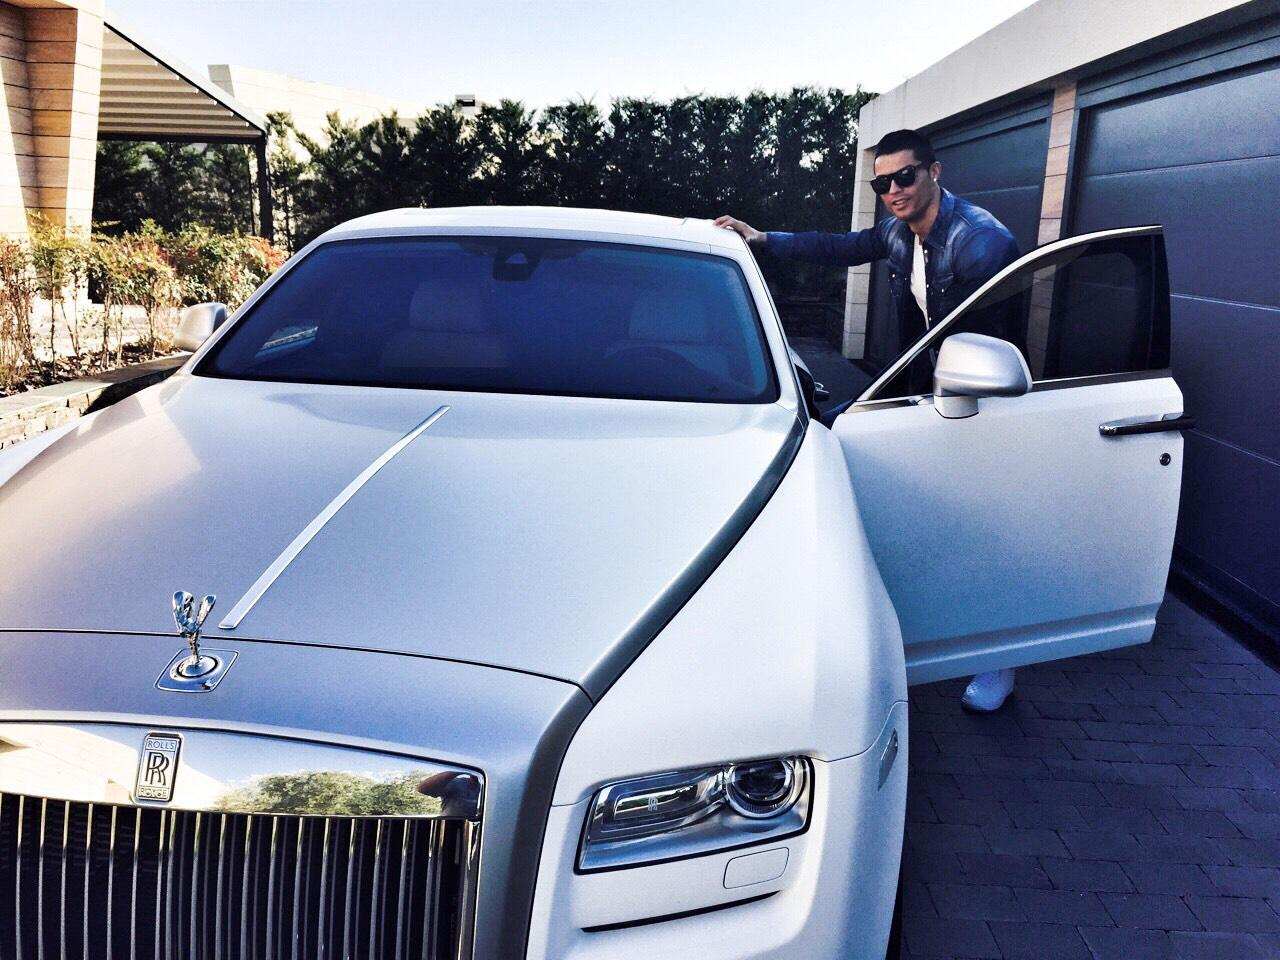 Cristiano Ronaldo Leaves For Training In His Rolls Royce Ghost